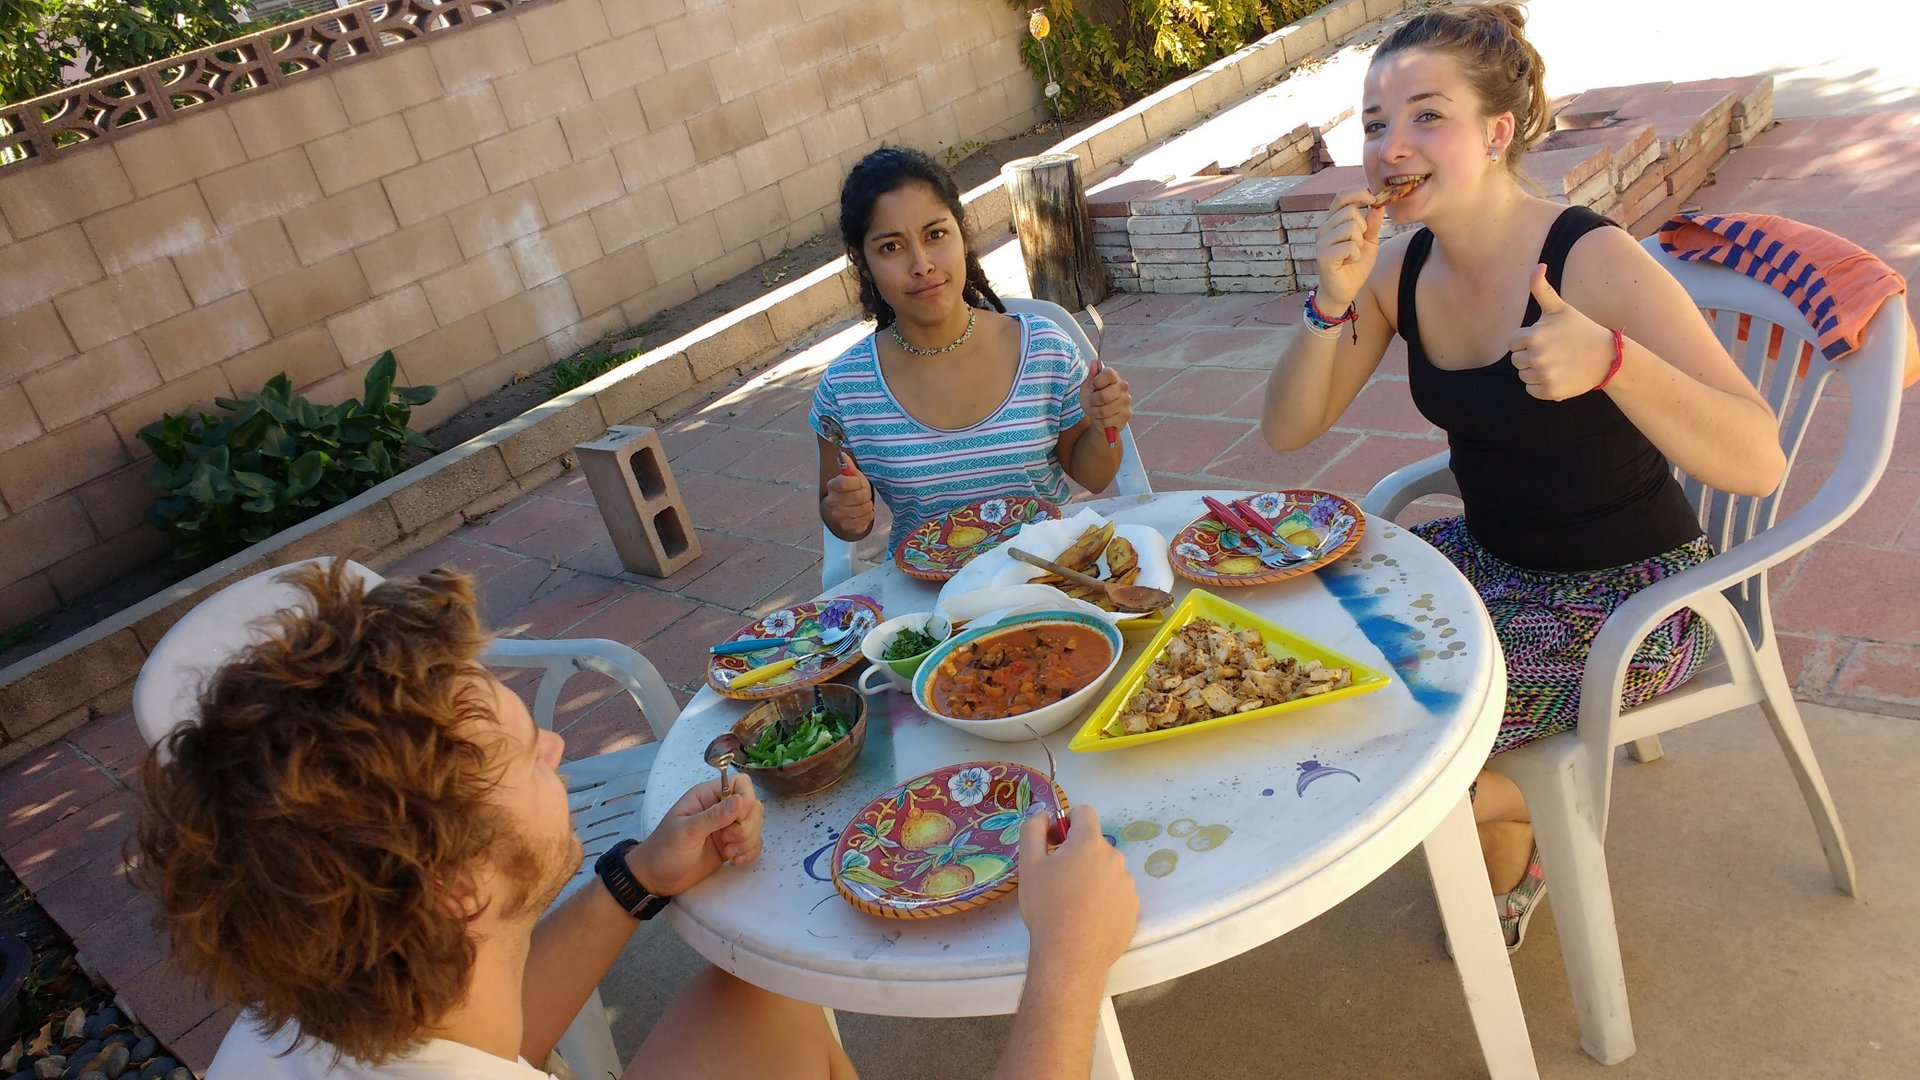 people sitting around a table and eating a meal